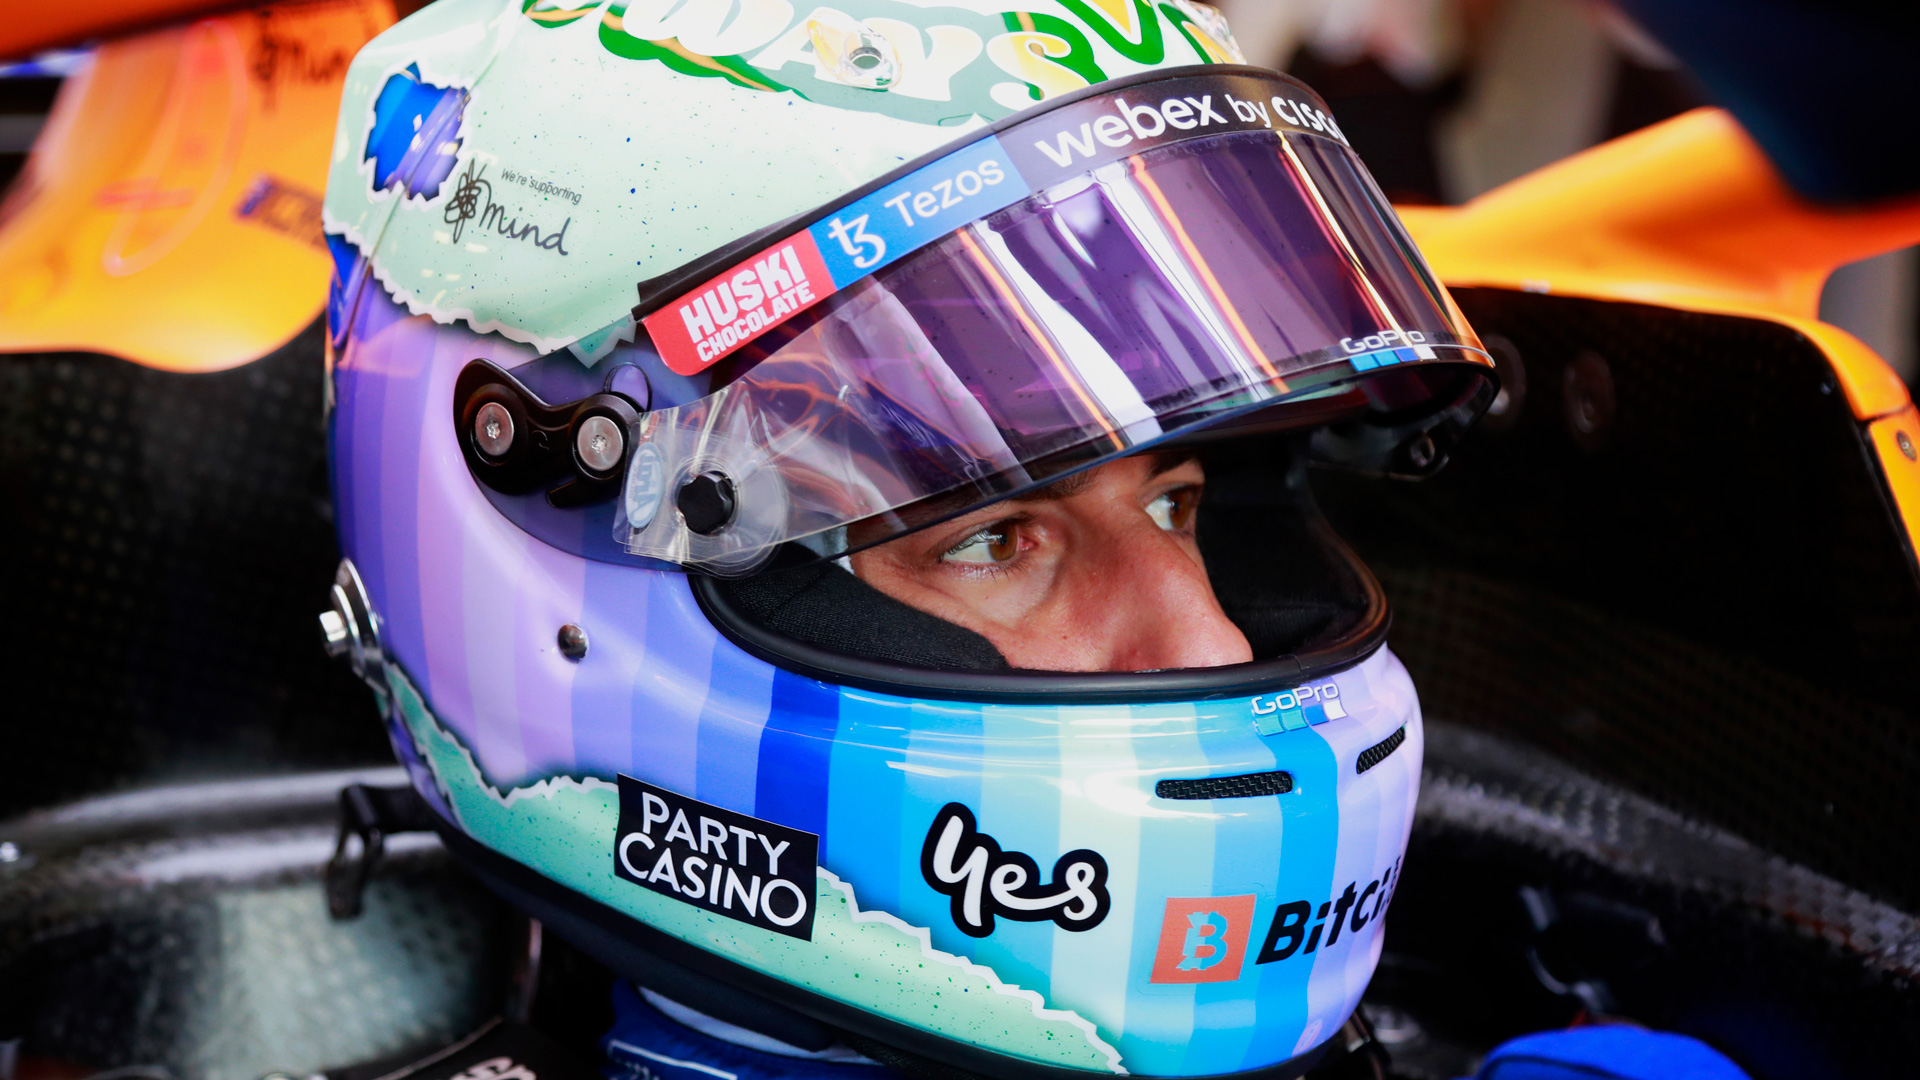 'All of us know racing etiquette' says Ricciardo as he says nothing was 'out of line' in Hamilton-Verstappen clash | Formula 1®